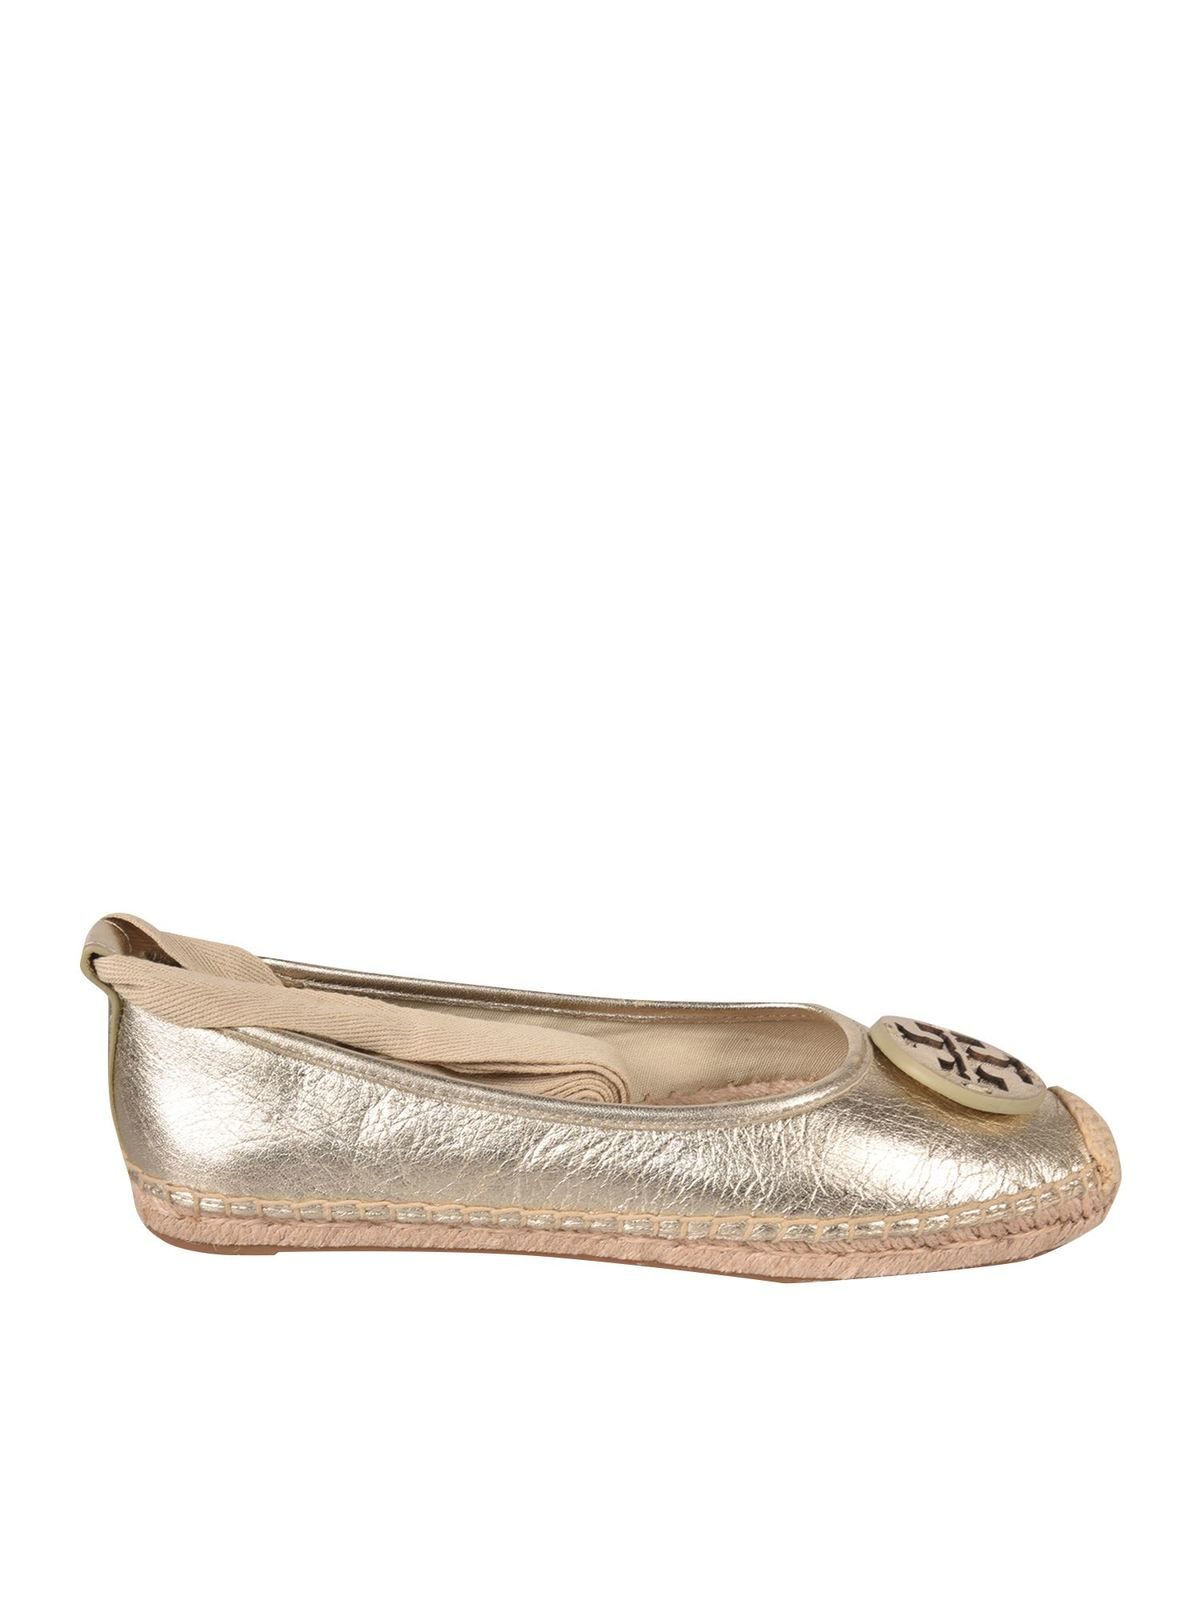 Tory Burch Ballerinas MINNIE ESPADRILLES IN SPARK GOLD COLOR